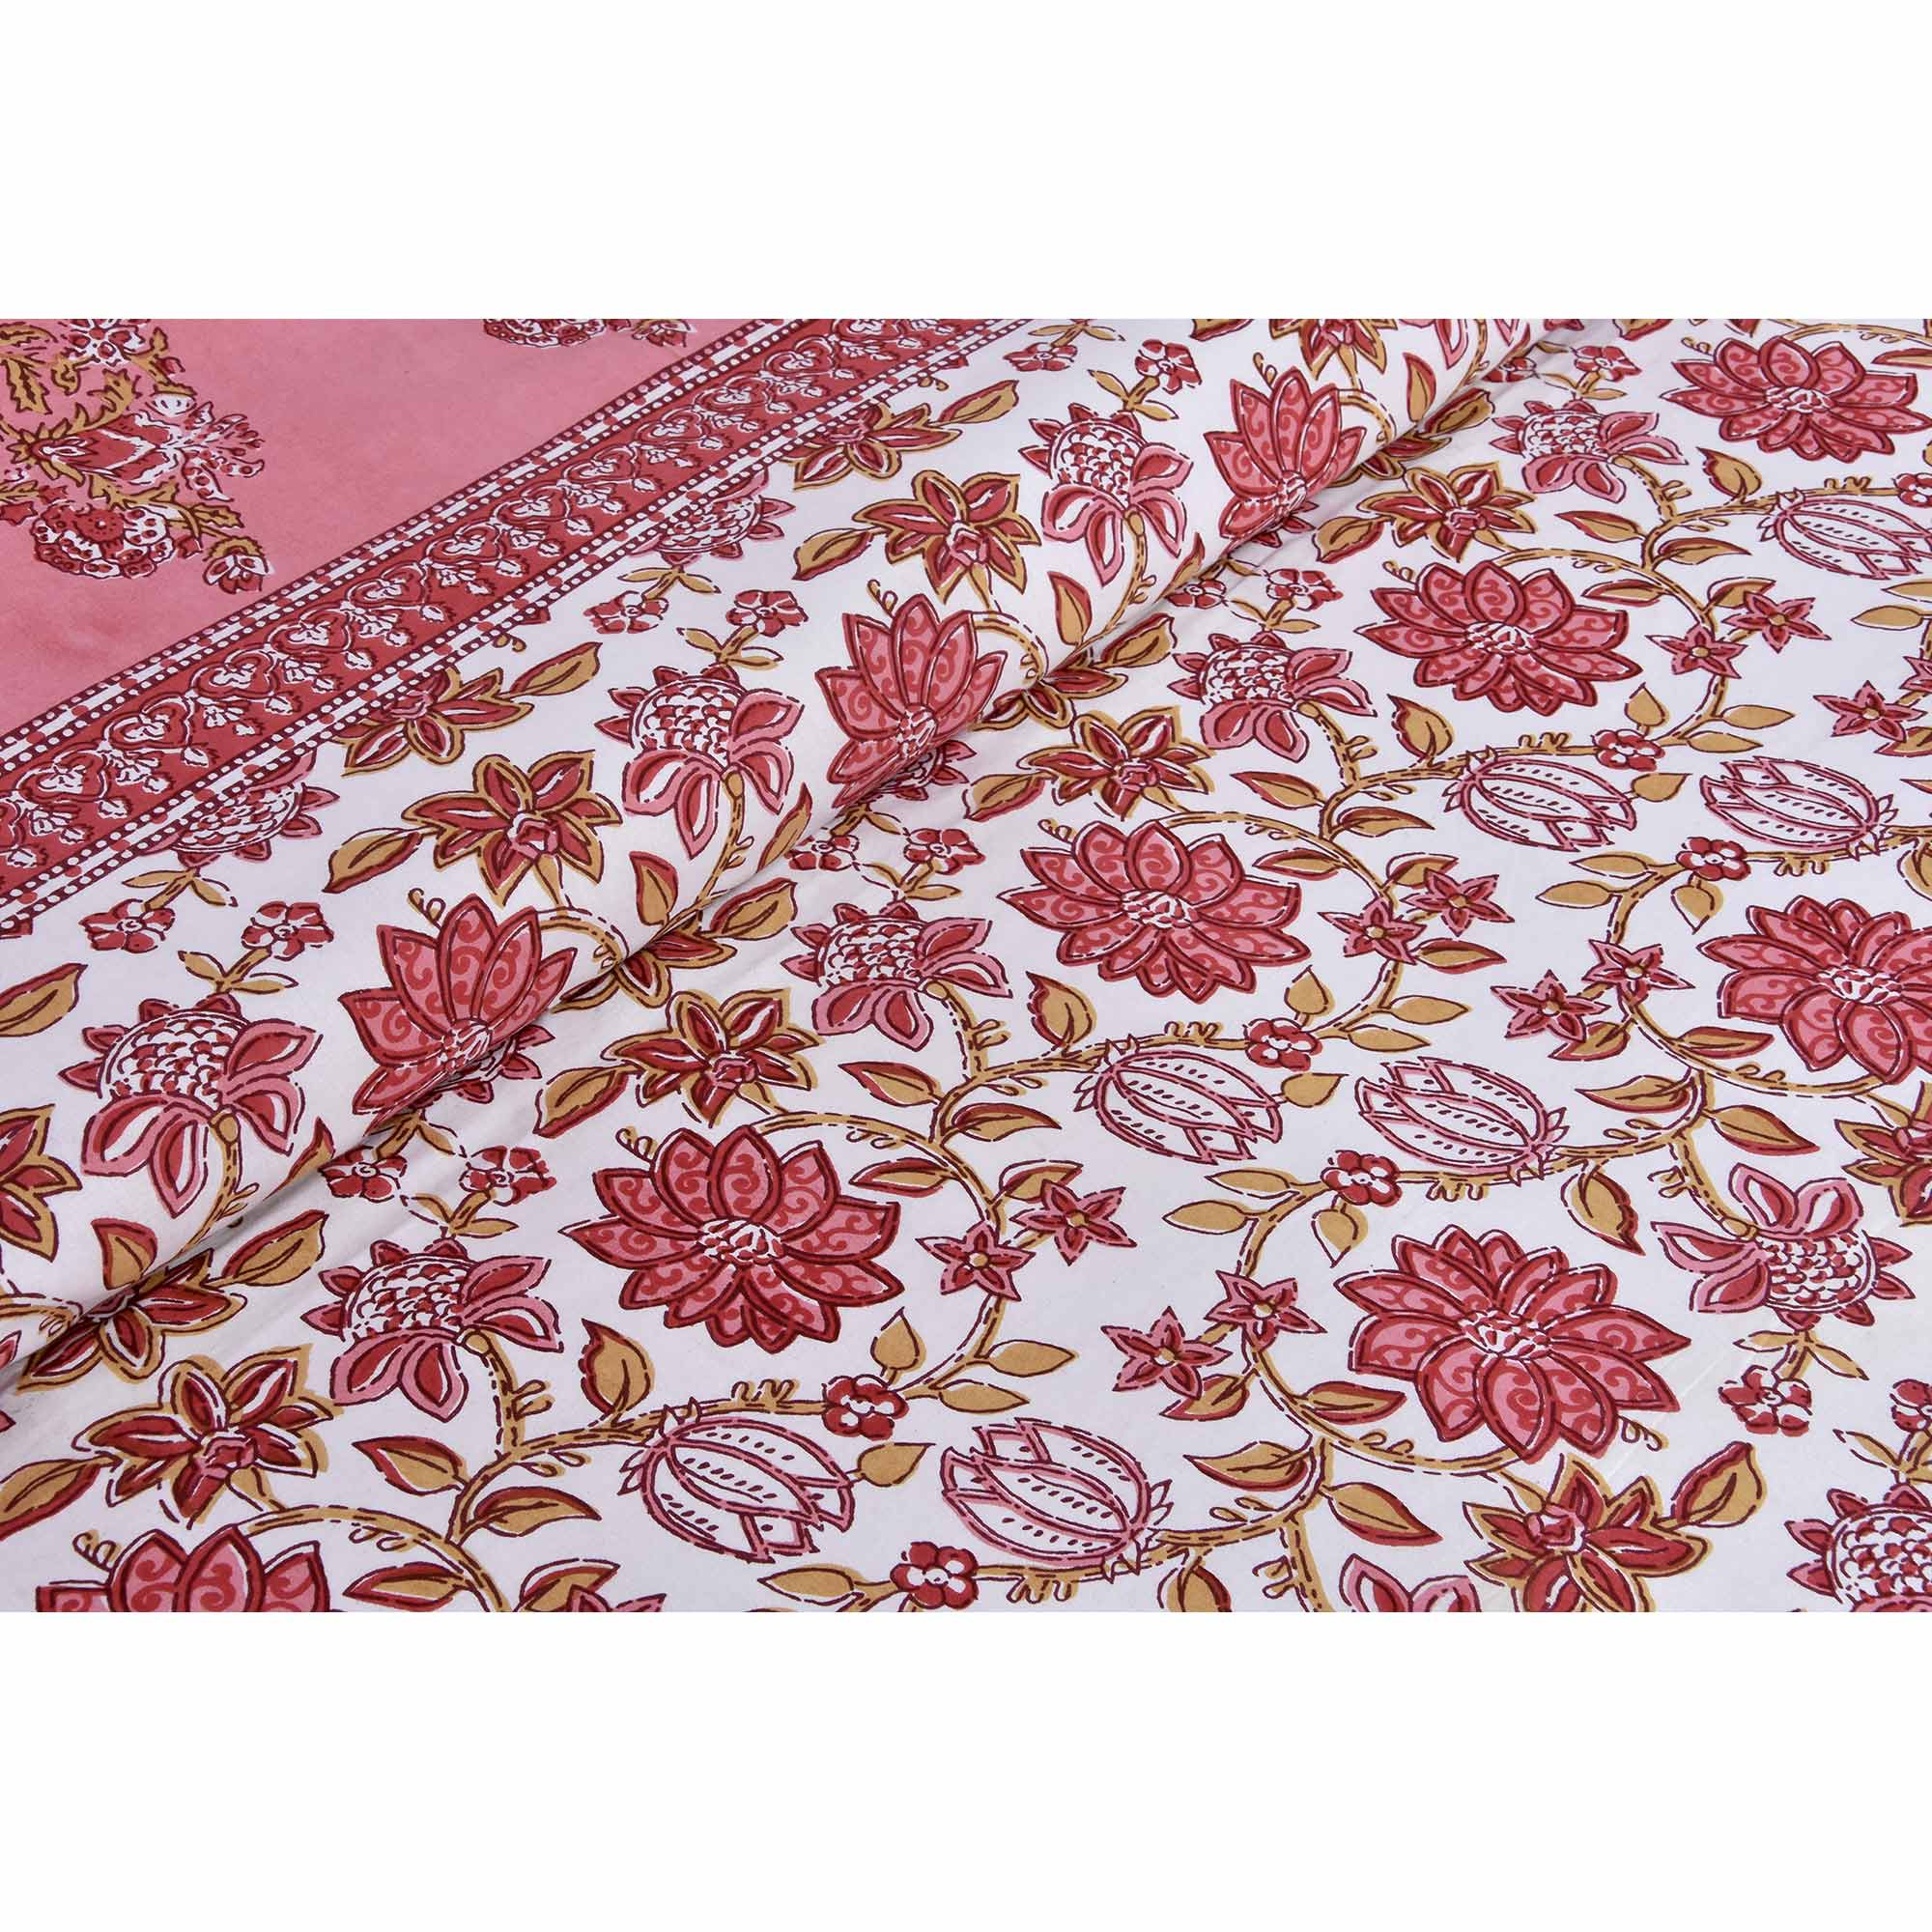 Peach Colored Floral Carnival Cotton Double Bed Sheet With 2 Pillow Cover